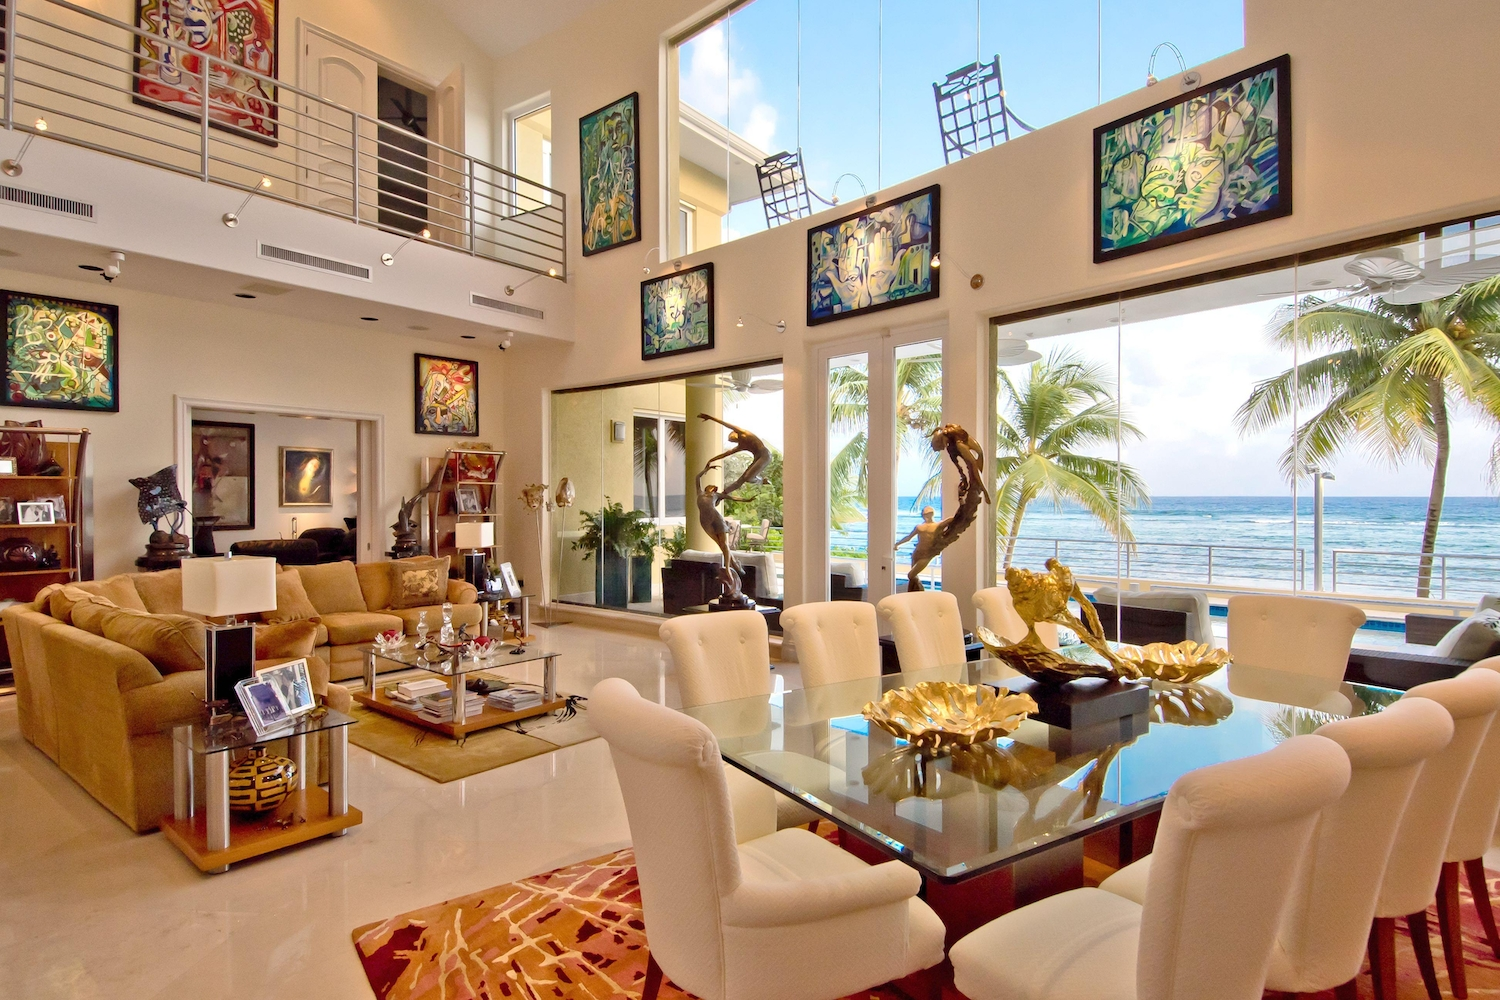 Interior of a den overlooking the ocean with lots of paintings